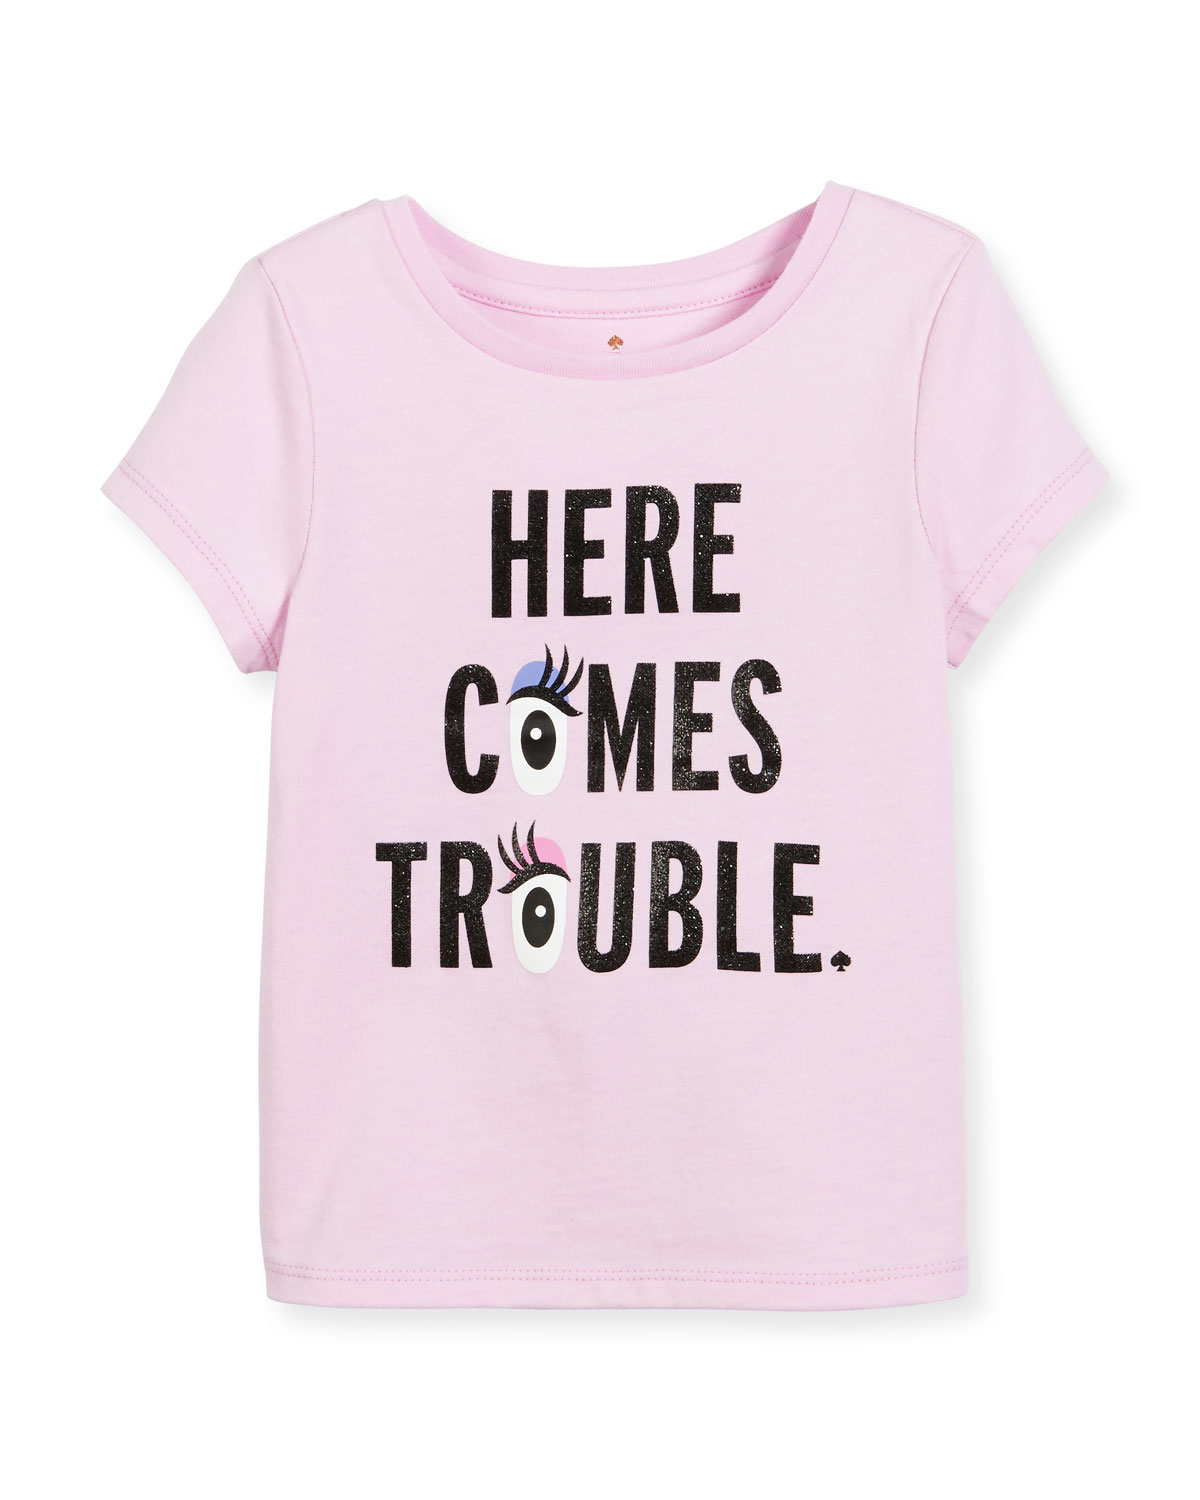 here comes trouble jersey tee, pink, size 7-14